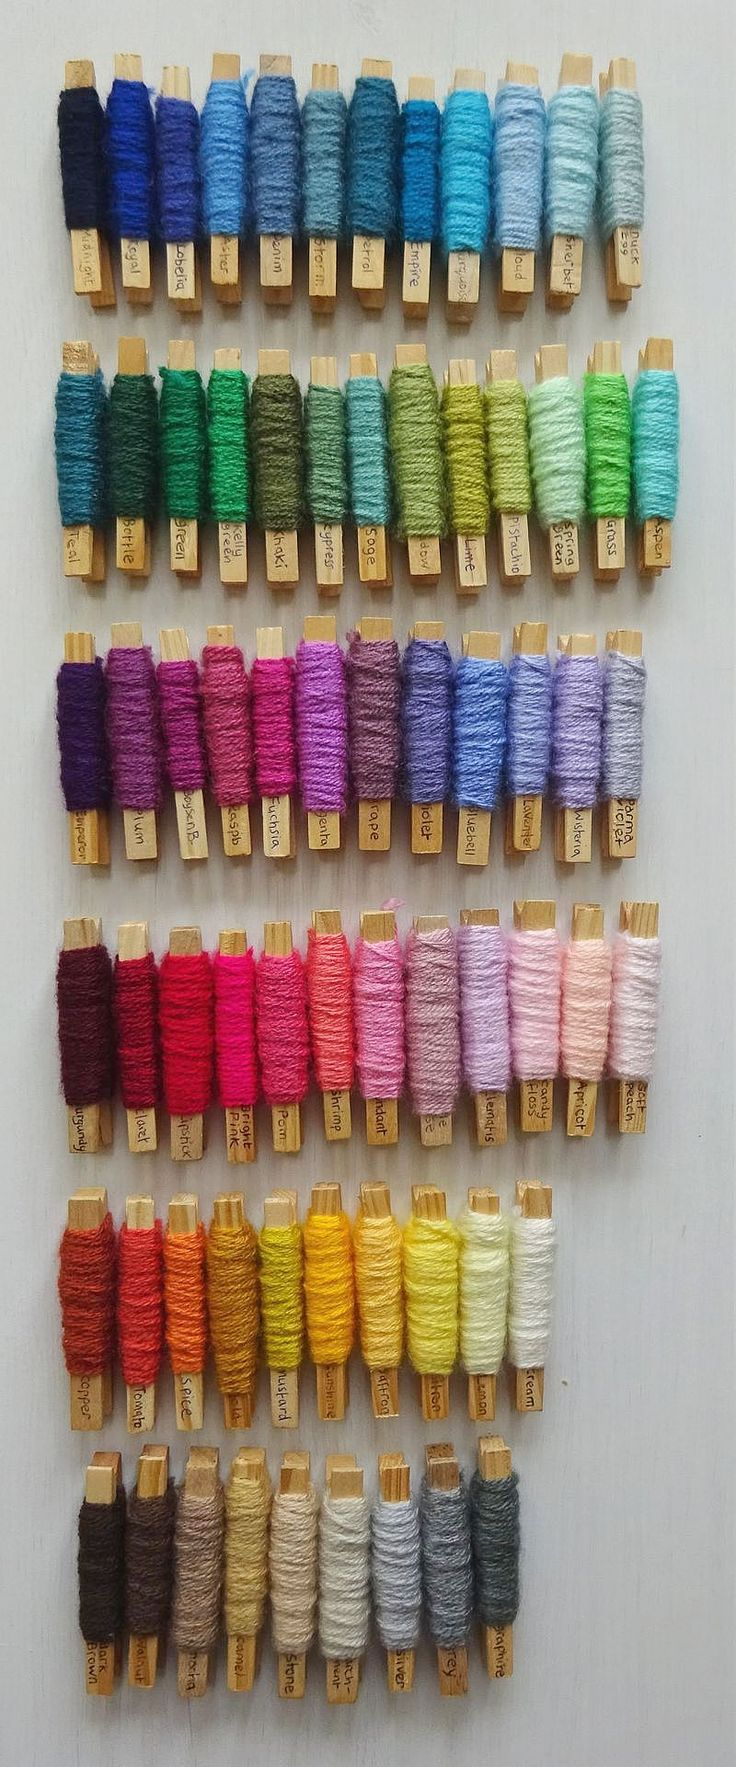 Blanket planning with yarn pegs - Stylecraft Special DK yarn colors ~ Lucy of Attic24